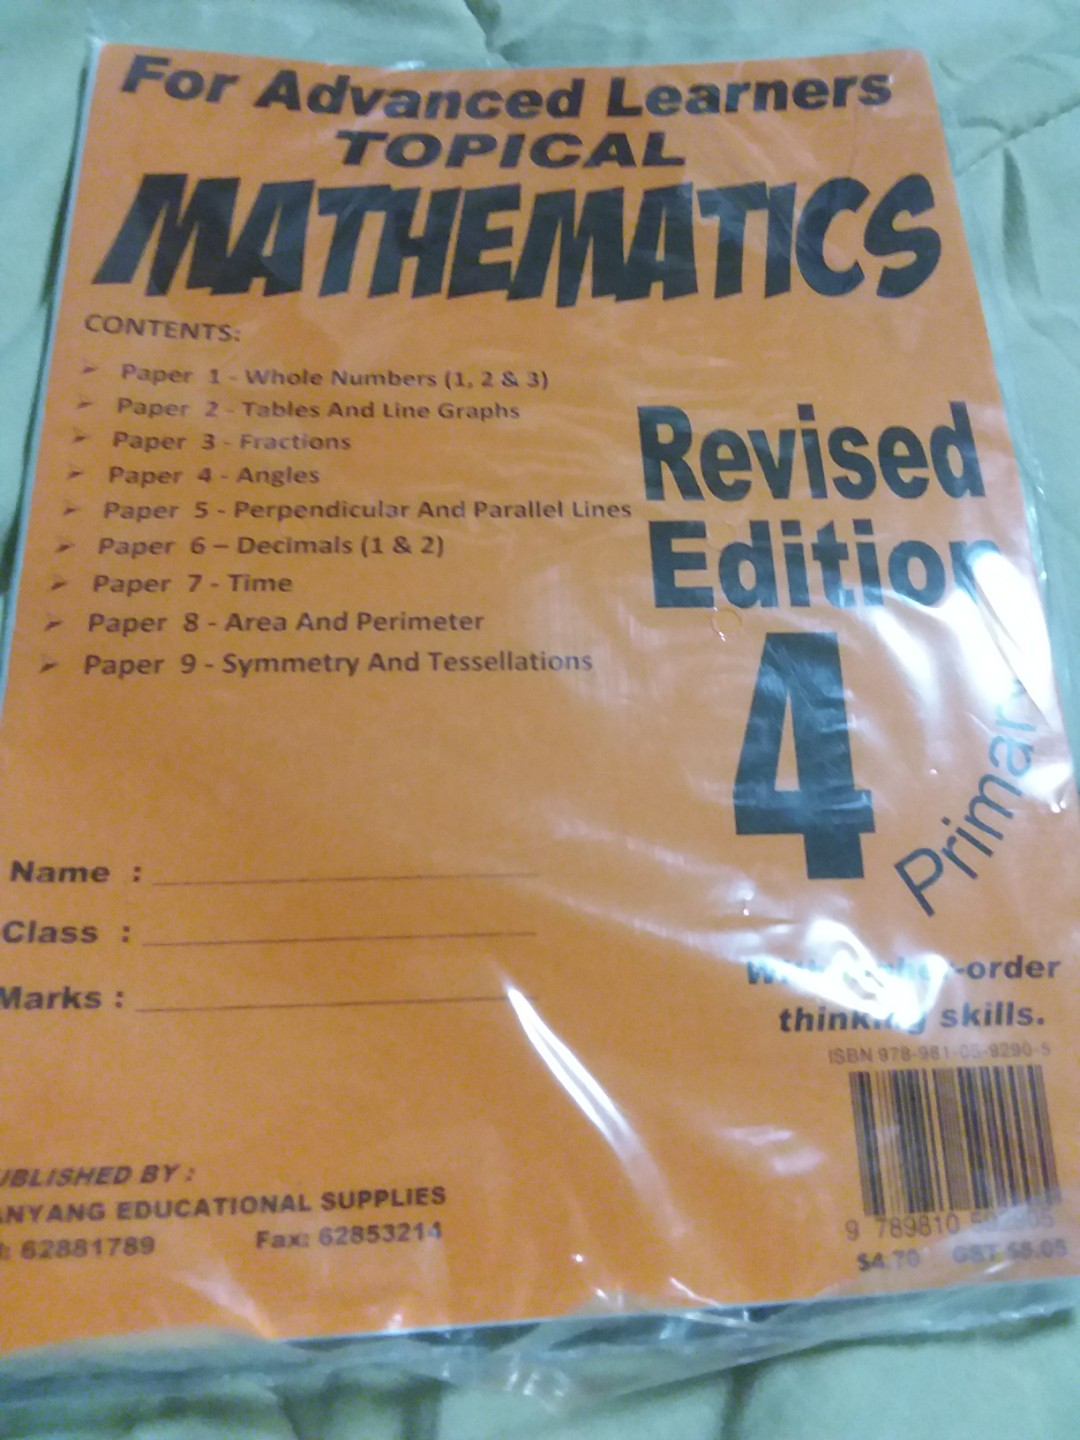 P4 Maths / English revision papers, Books & Stationery, Textbooks on